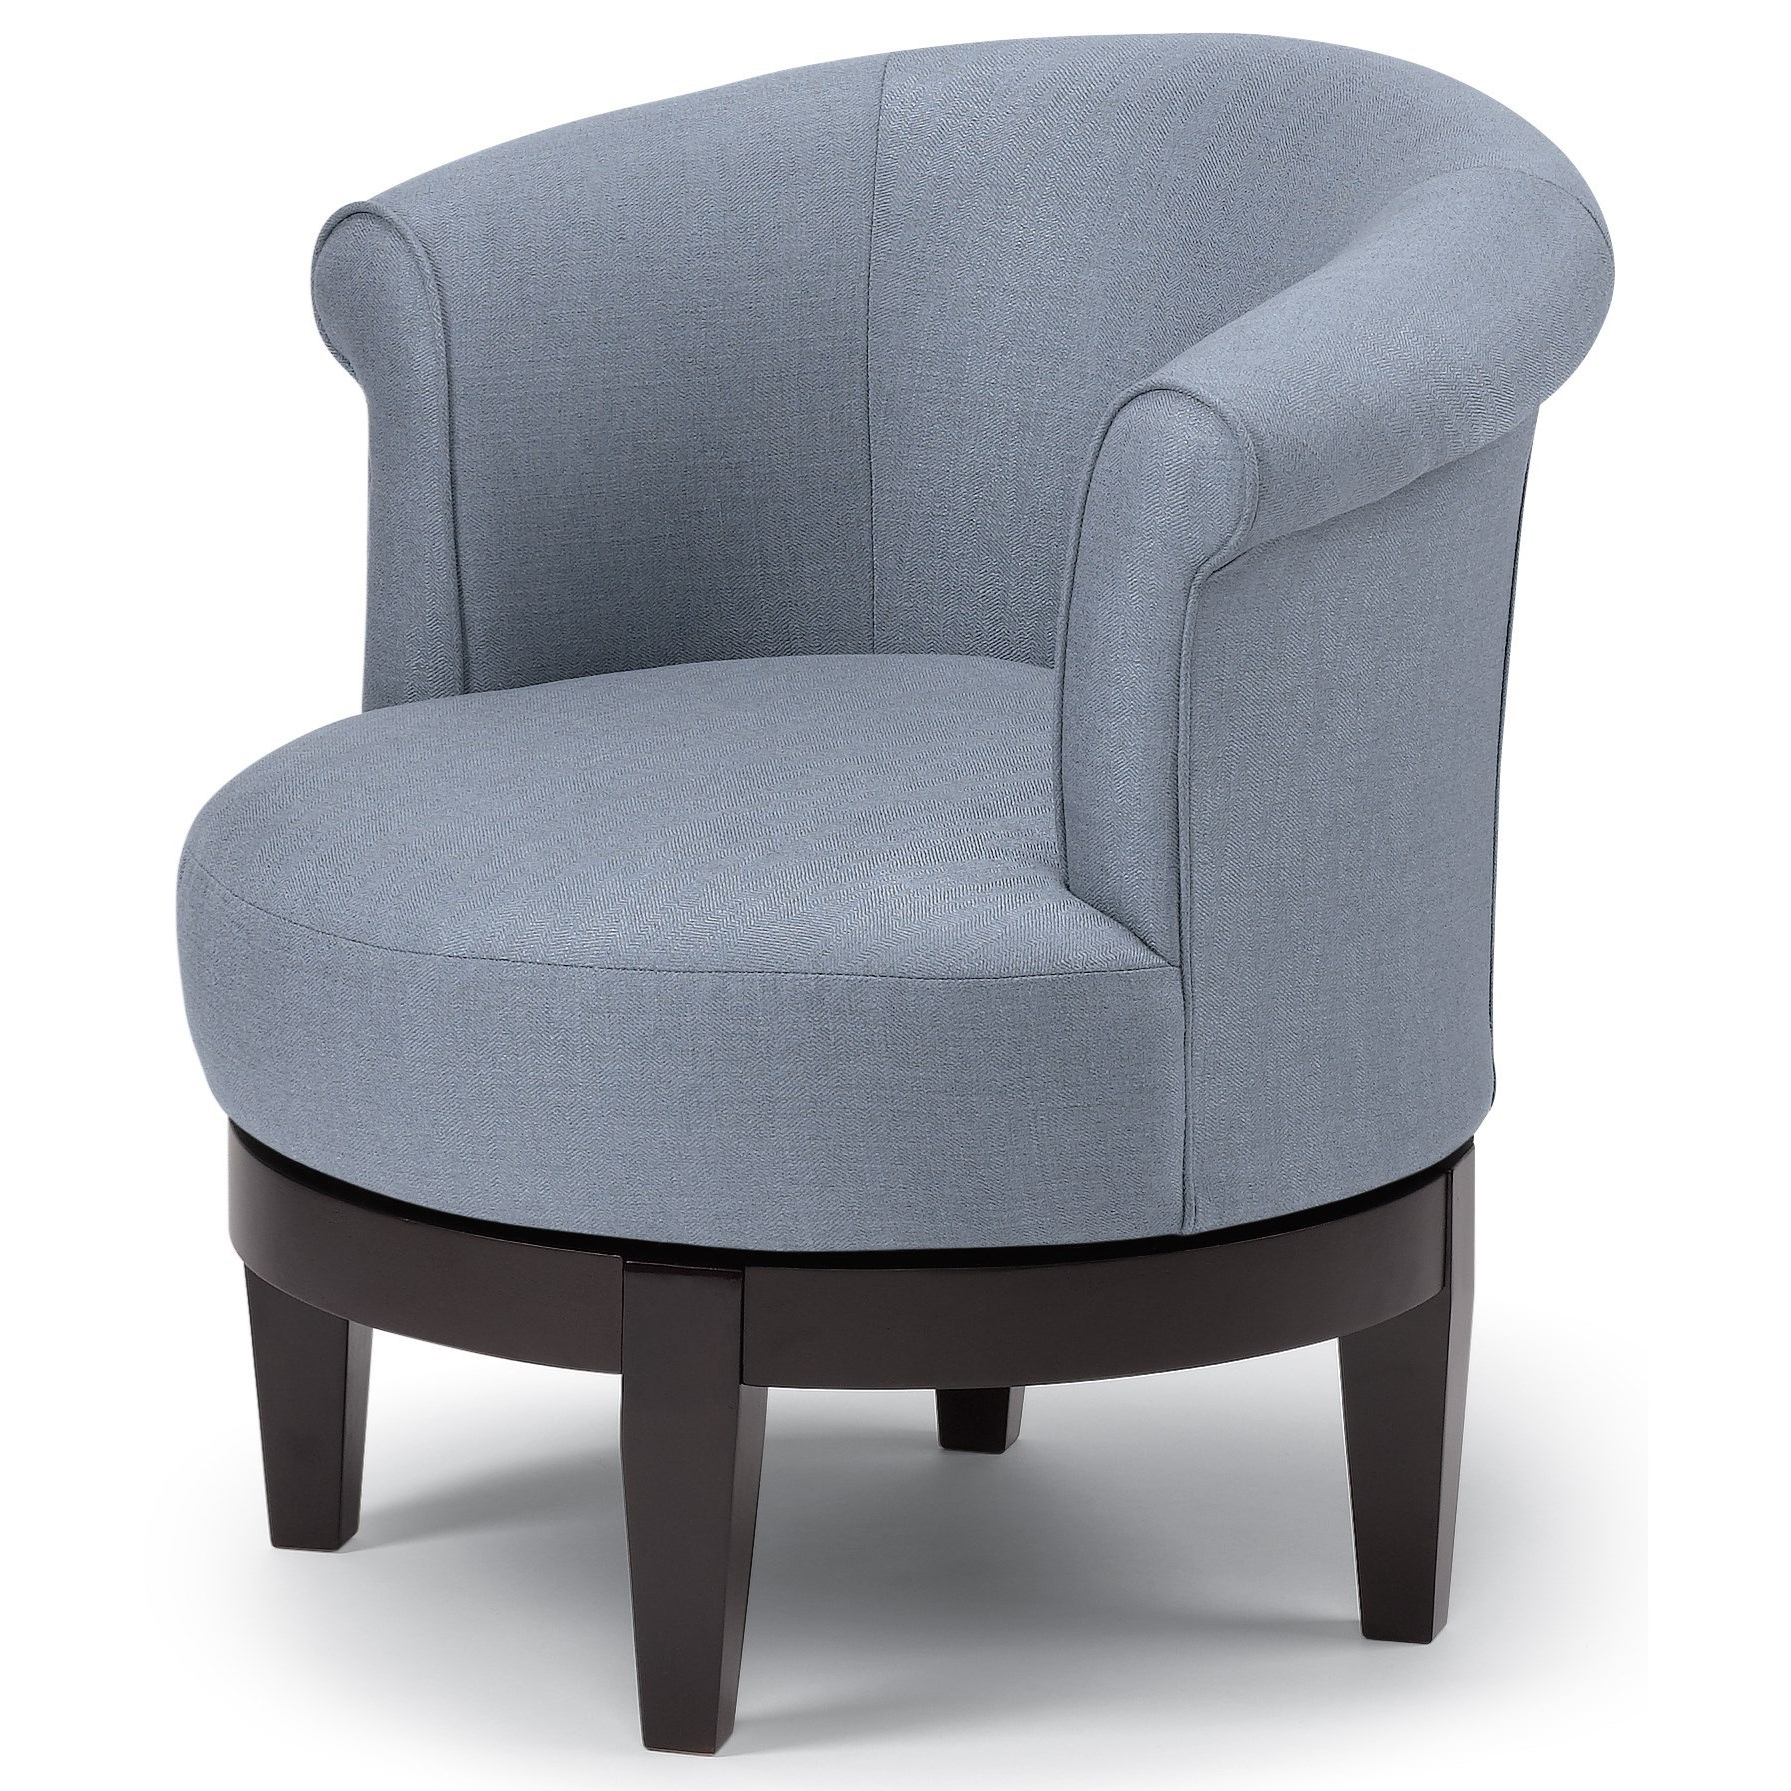 Well Liked Artemi Barrel Chair And Ottoman Sets In Best Home Furnishings Chairs – Swivel Barrel (View 20 of 20)